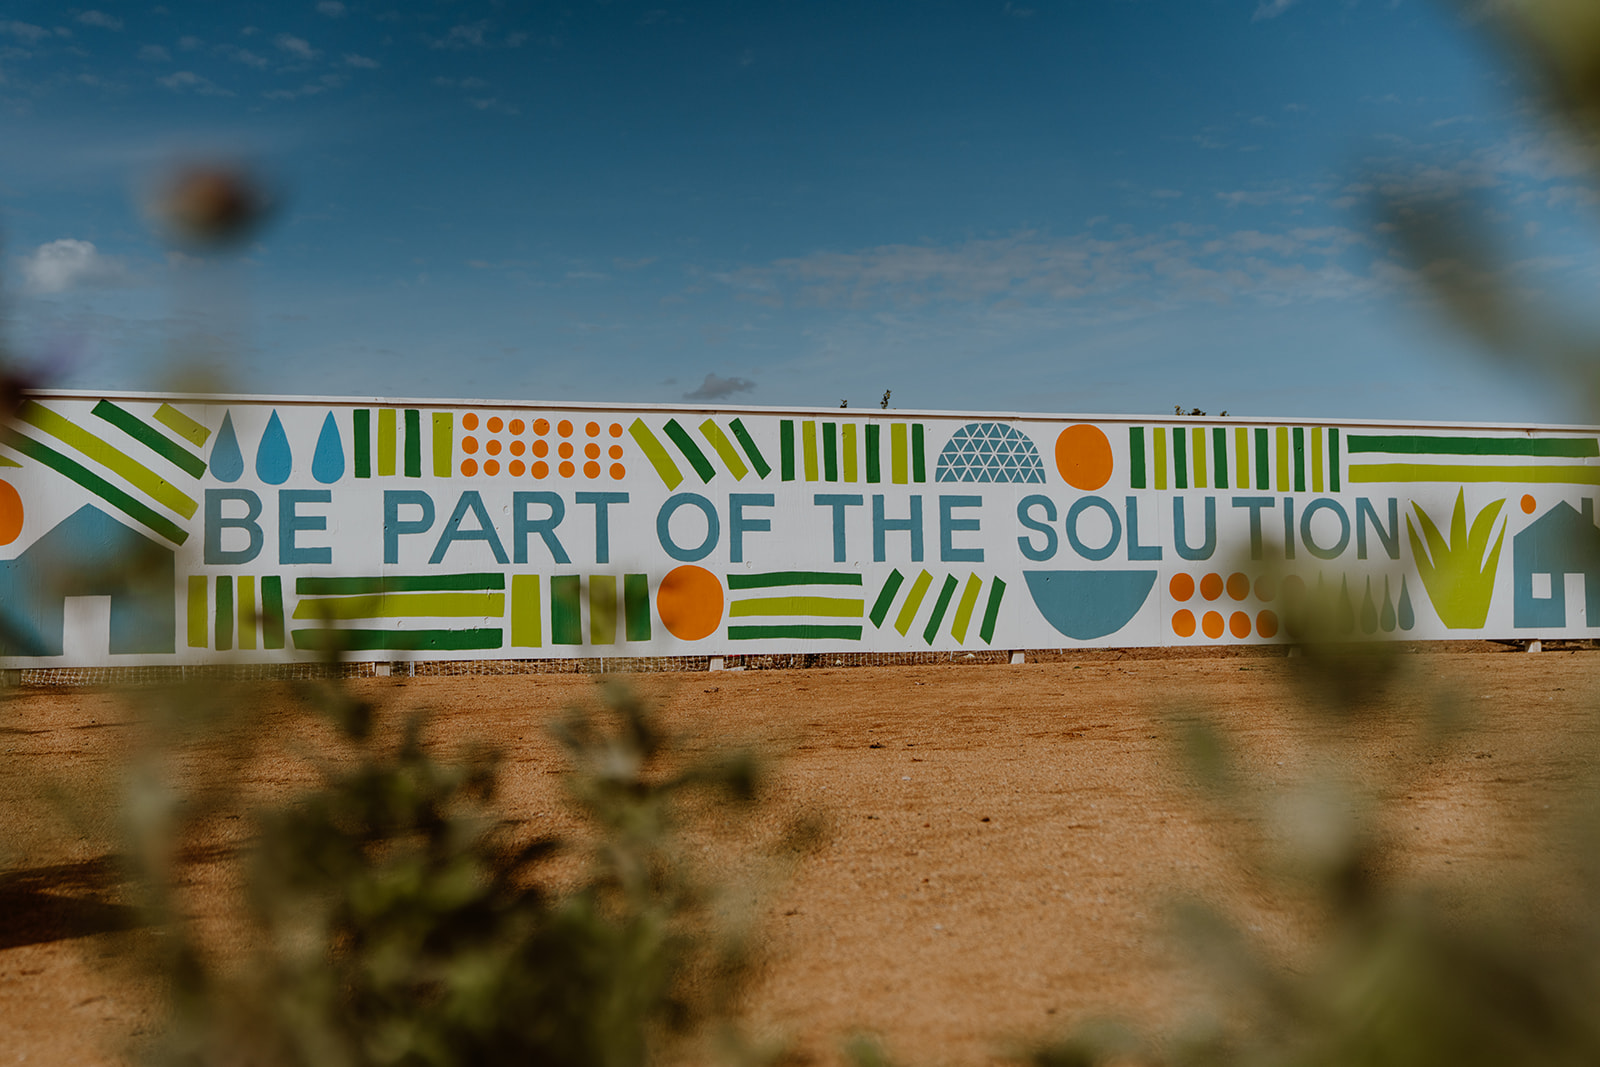 Be Part of The Solution phrase painted on fence.